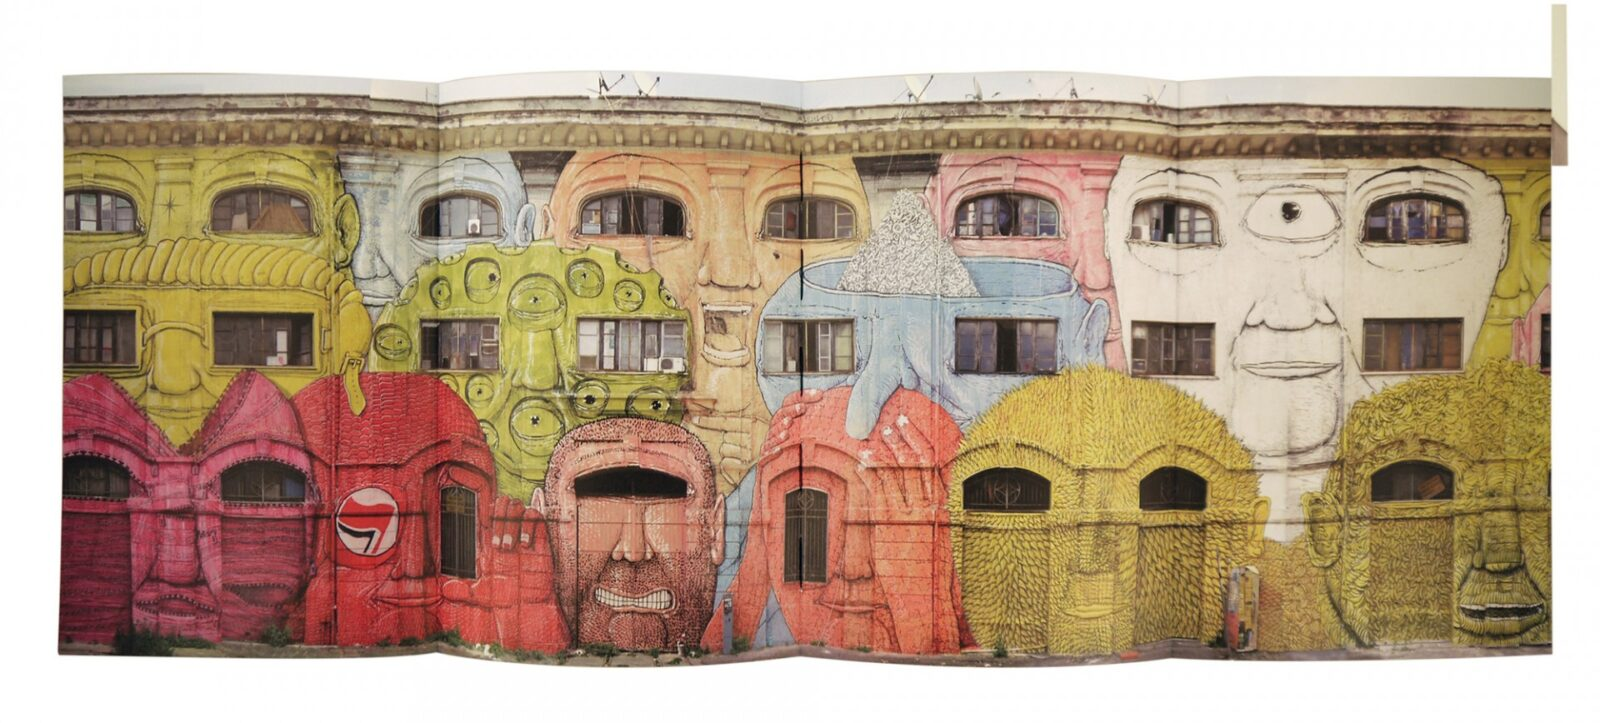 Minima Muralia: A Collection of 15 Years of Murals by Street Artist Blu